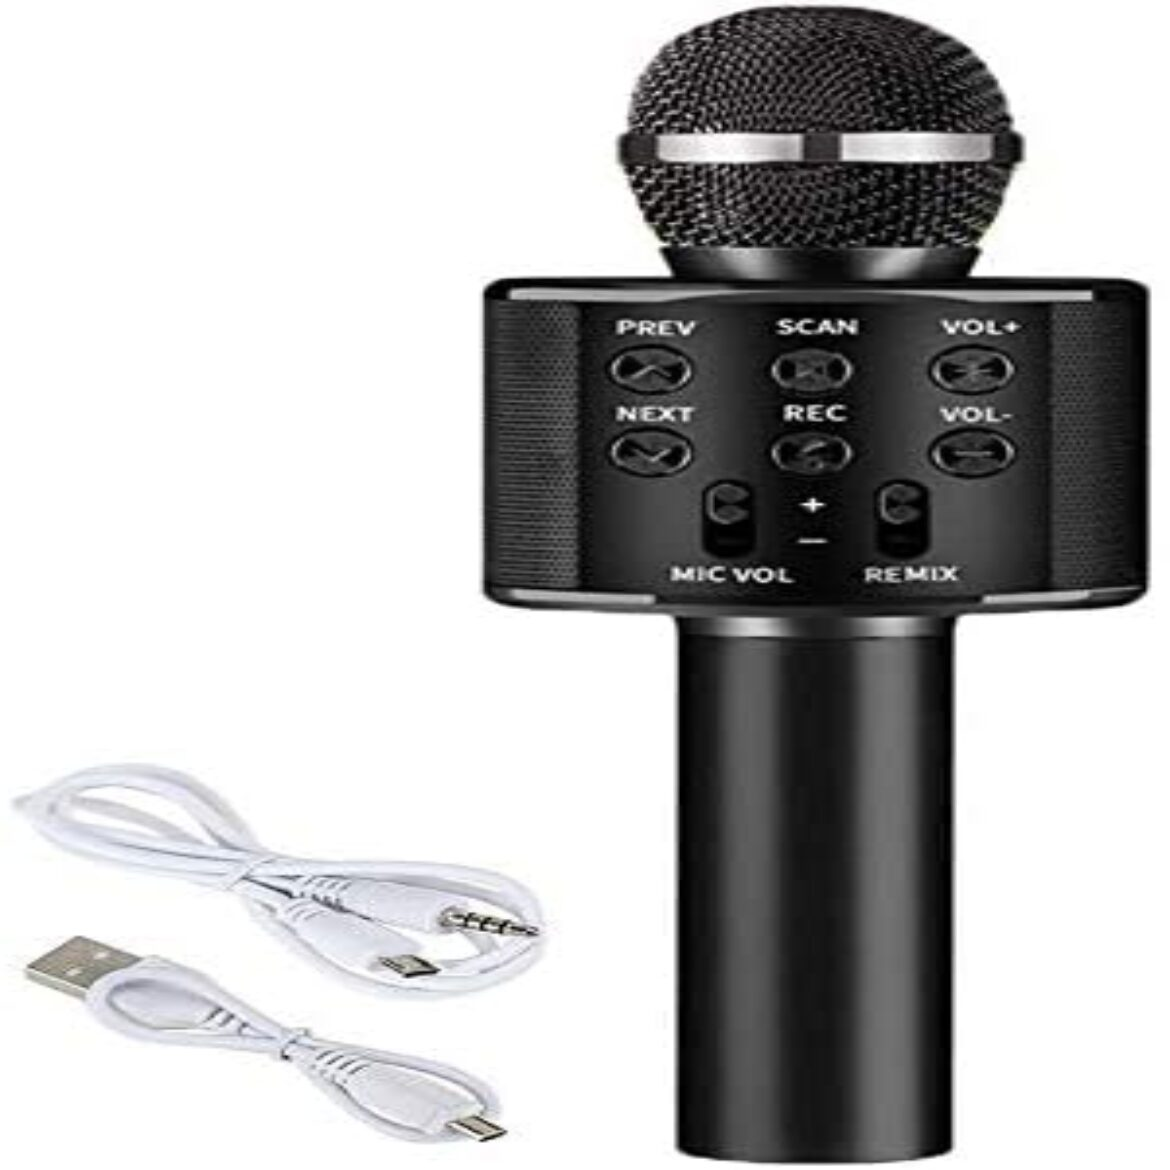 1PC Wireless Microphone Karaoke Transportable Player Speaker for Home KTV Outdoors Celebration Music Playing